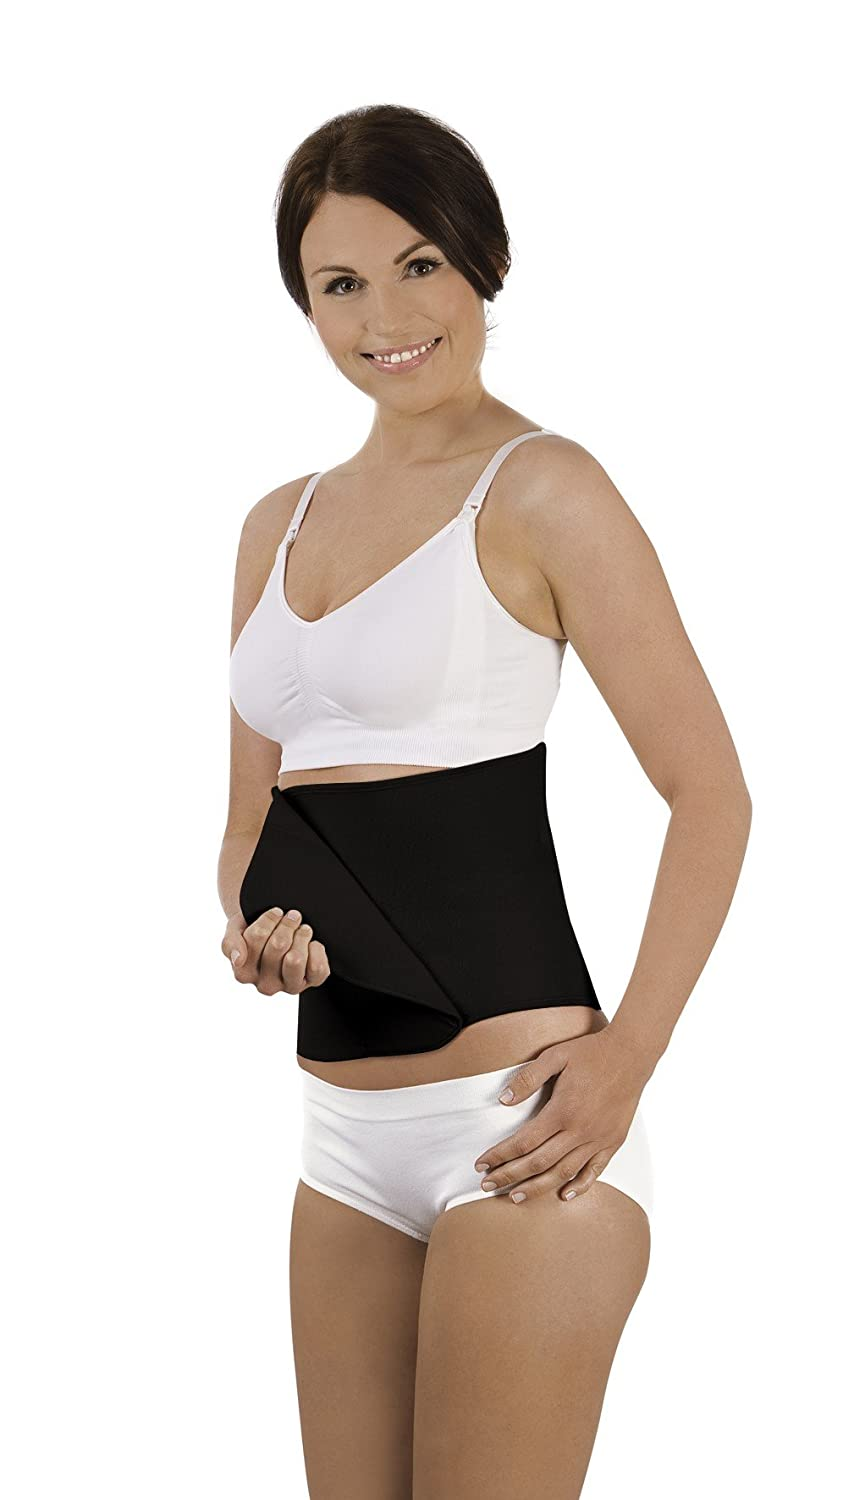 Carriwell Adjustable Organic Cotton Belly Binder (Small/Medium, Black) 185